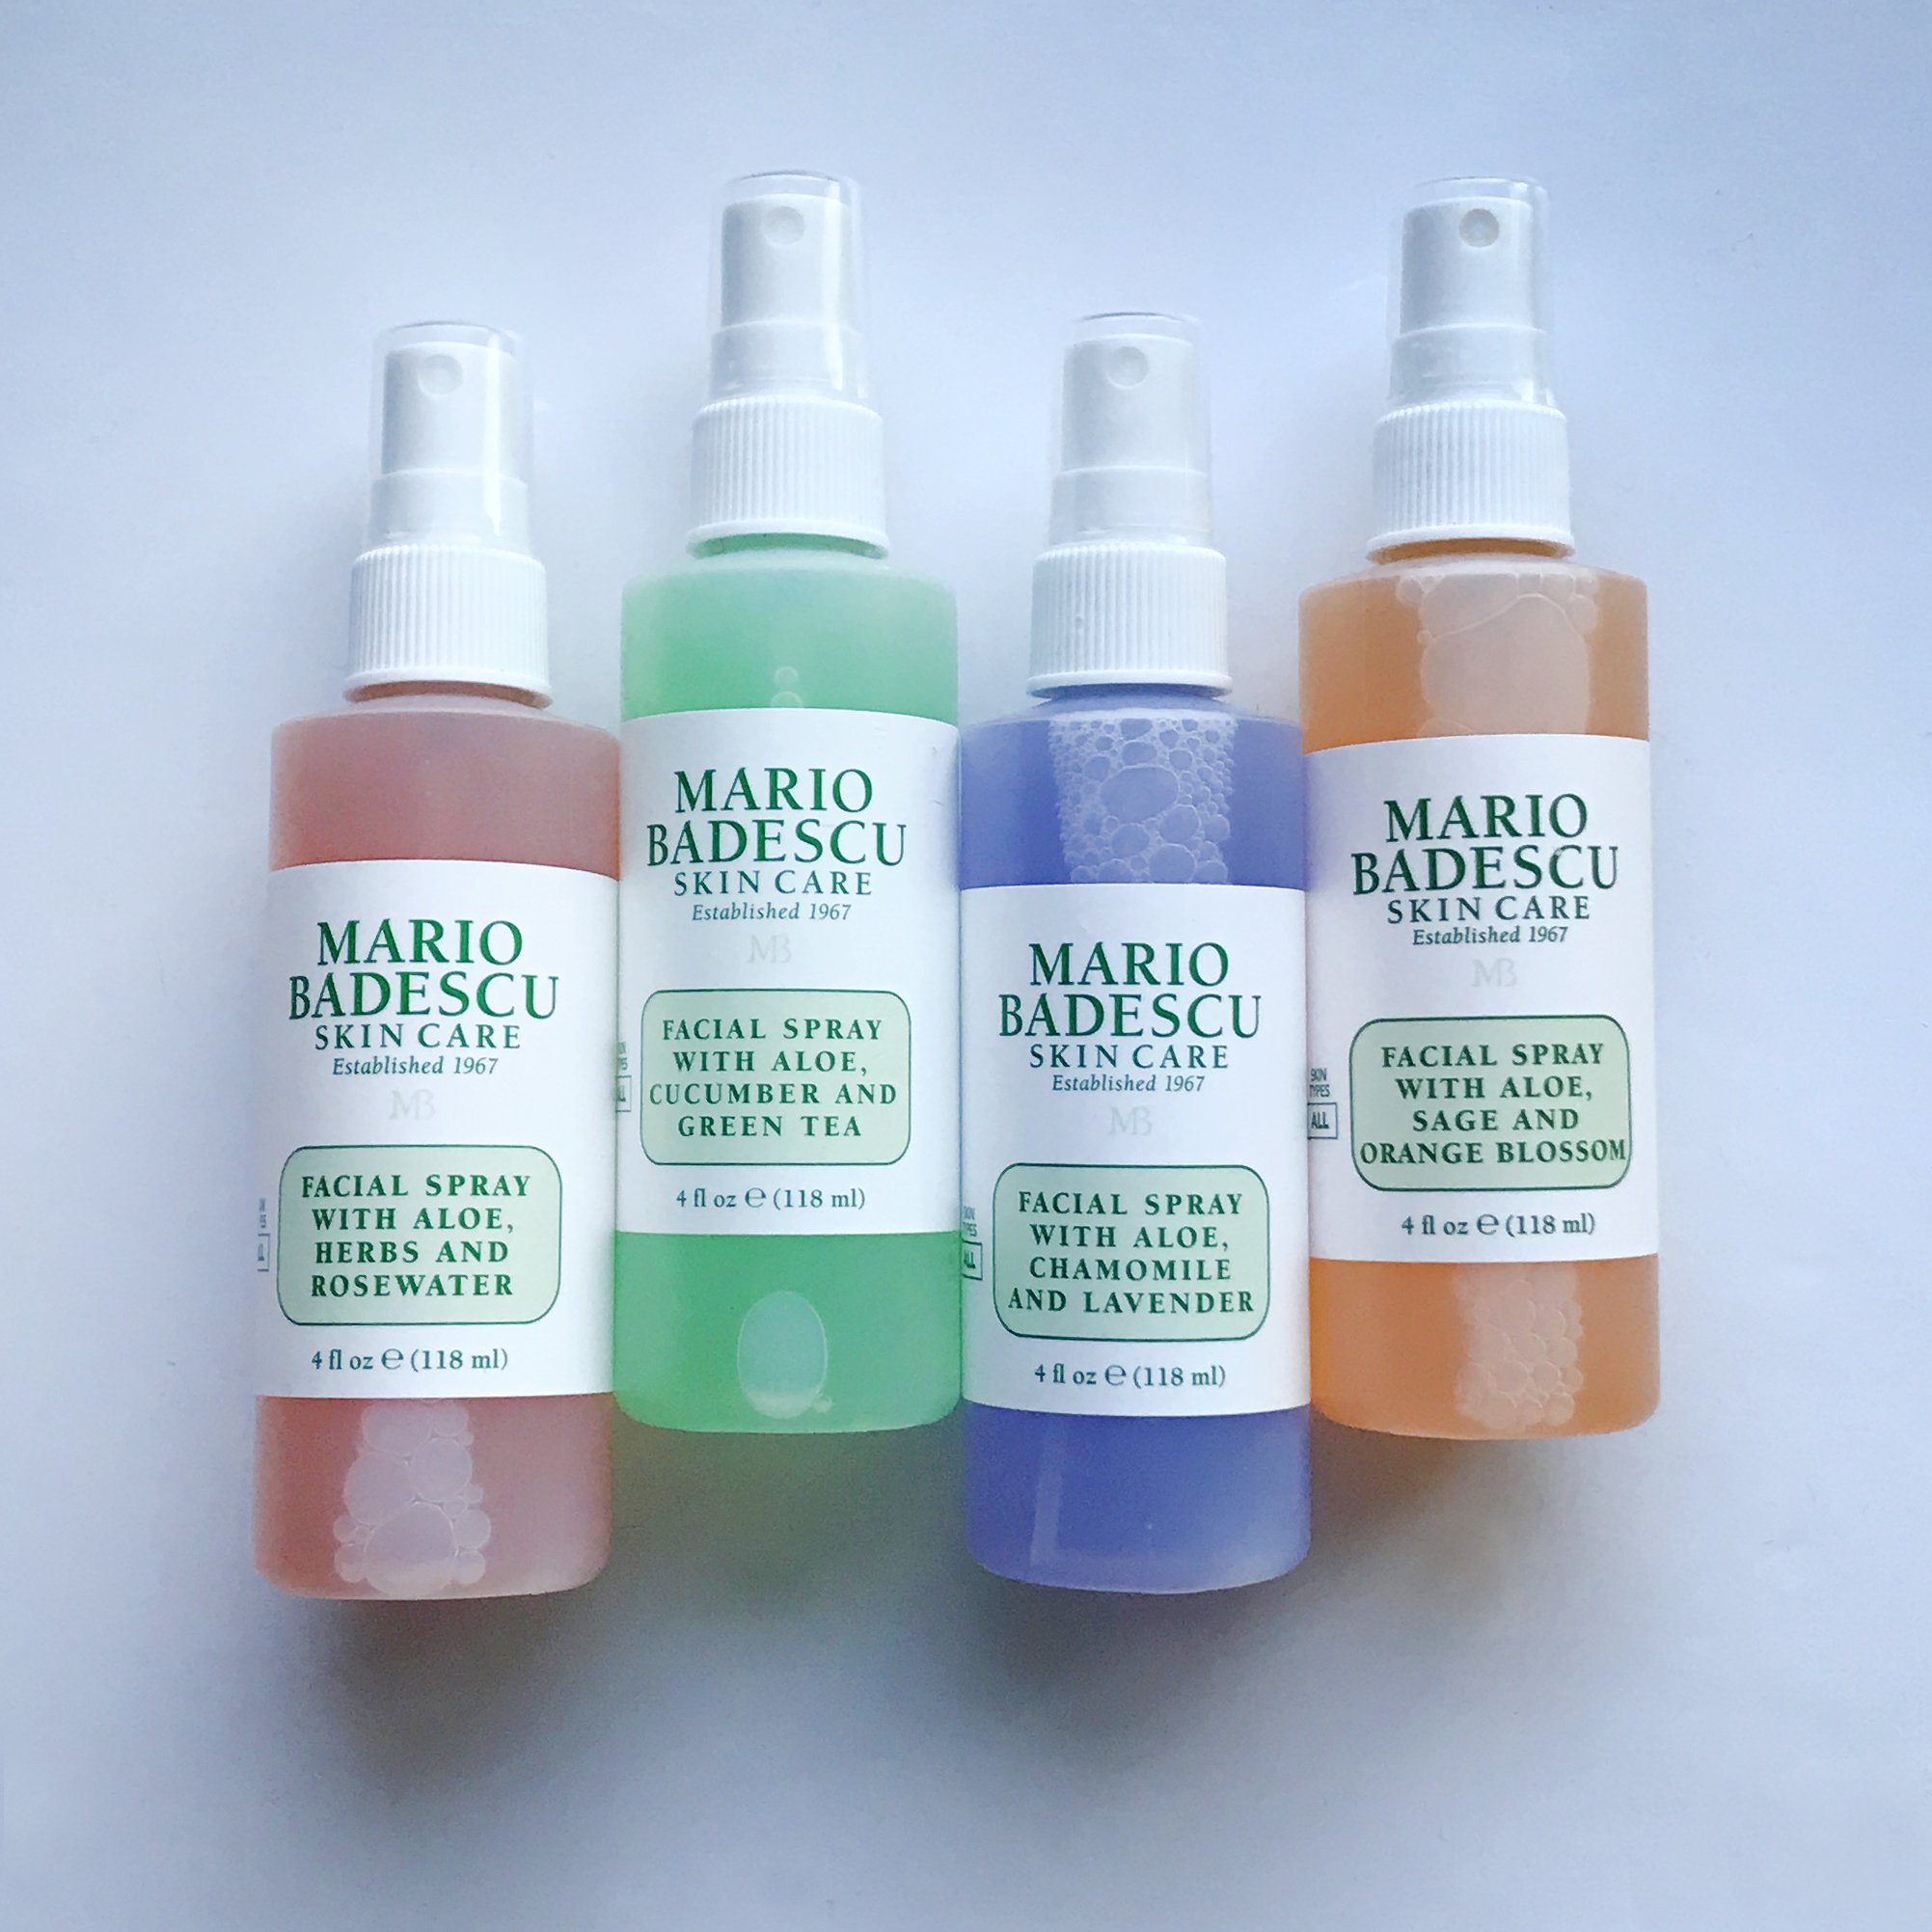 Guide de comparaison du spray facial Mario Badescu